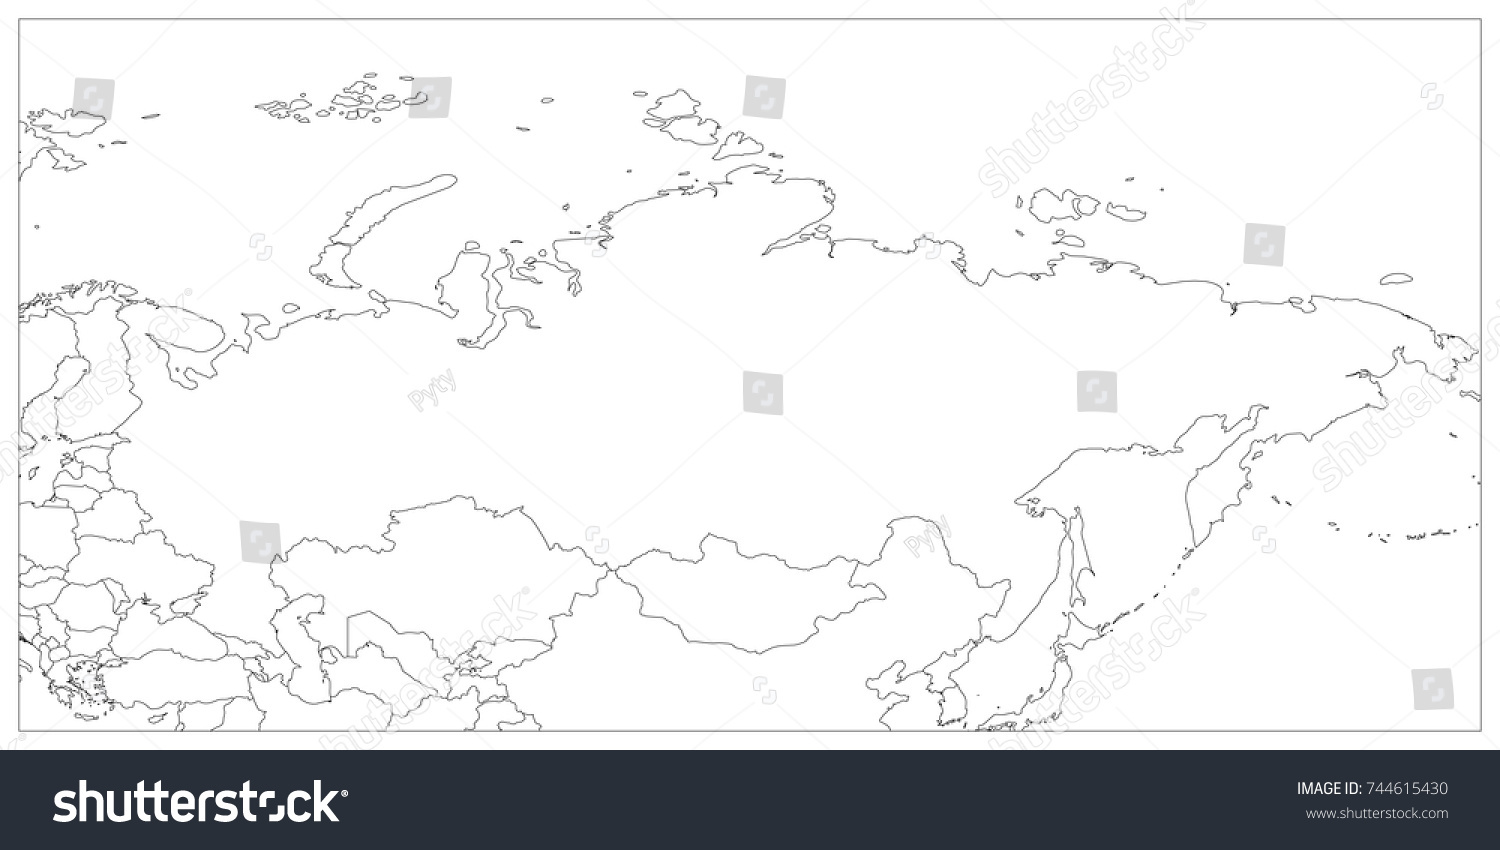 Political Map Russia Surrounding Countries Black | Royalty ...